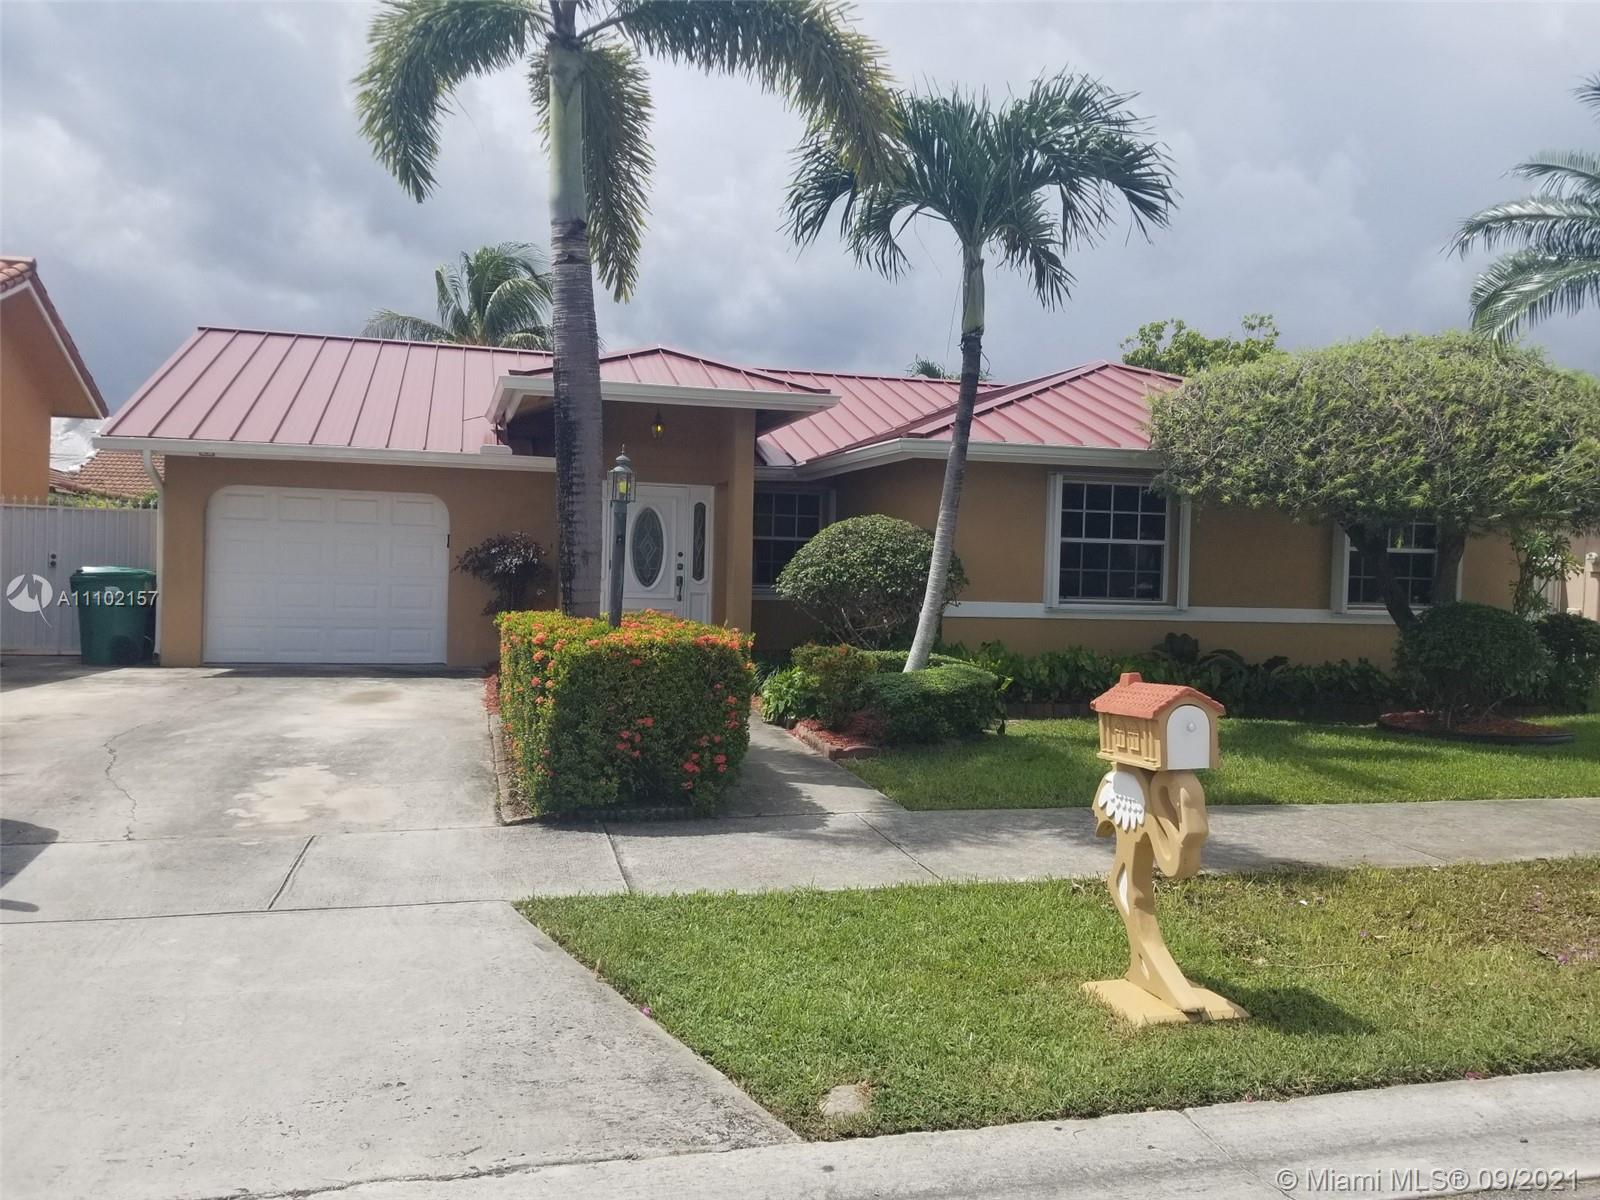 Single Family Home,For Rent,940 NW 128th Ct, Miami, Florida 33182,Brickell,realty,broker,condos near me